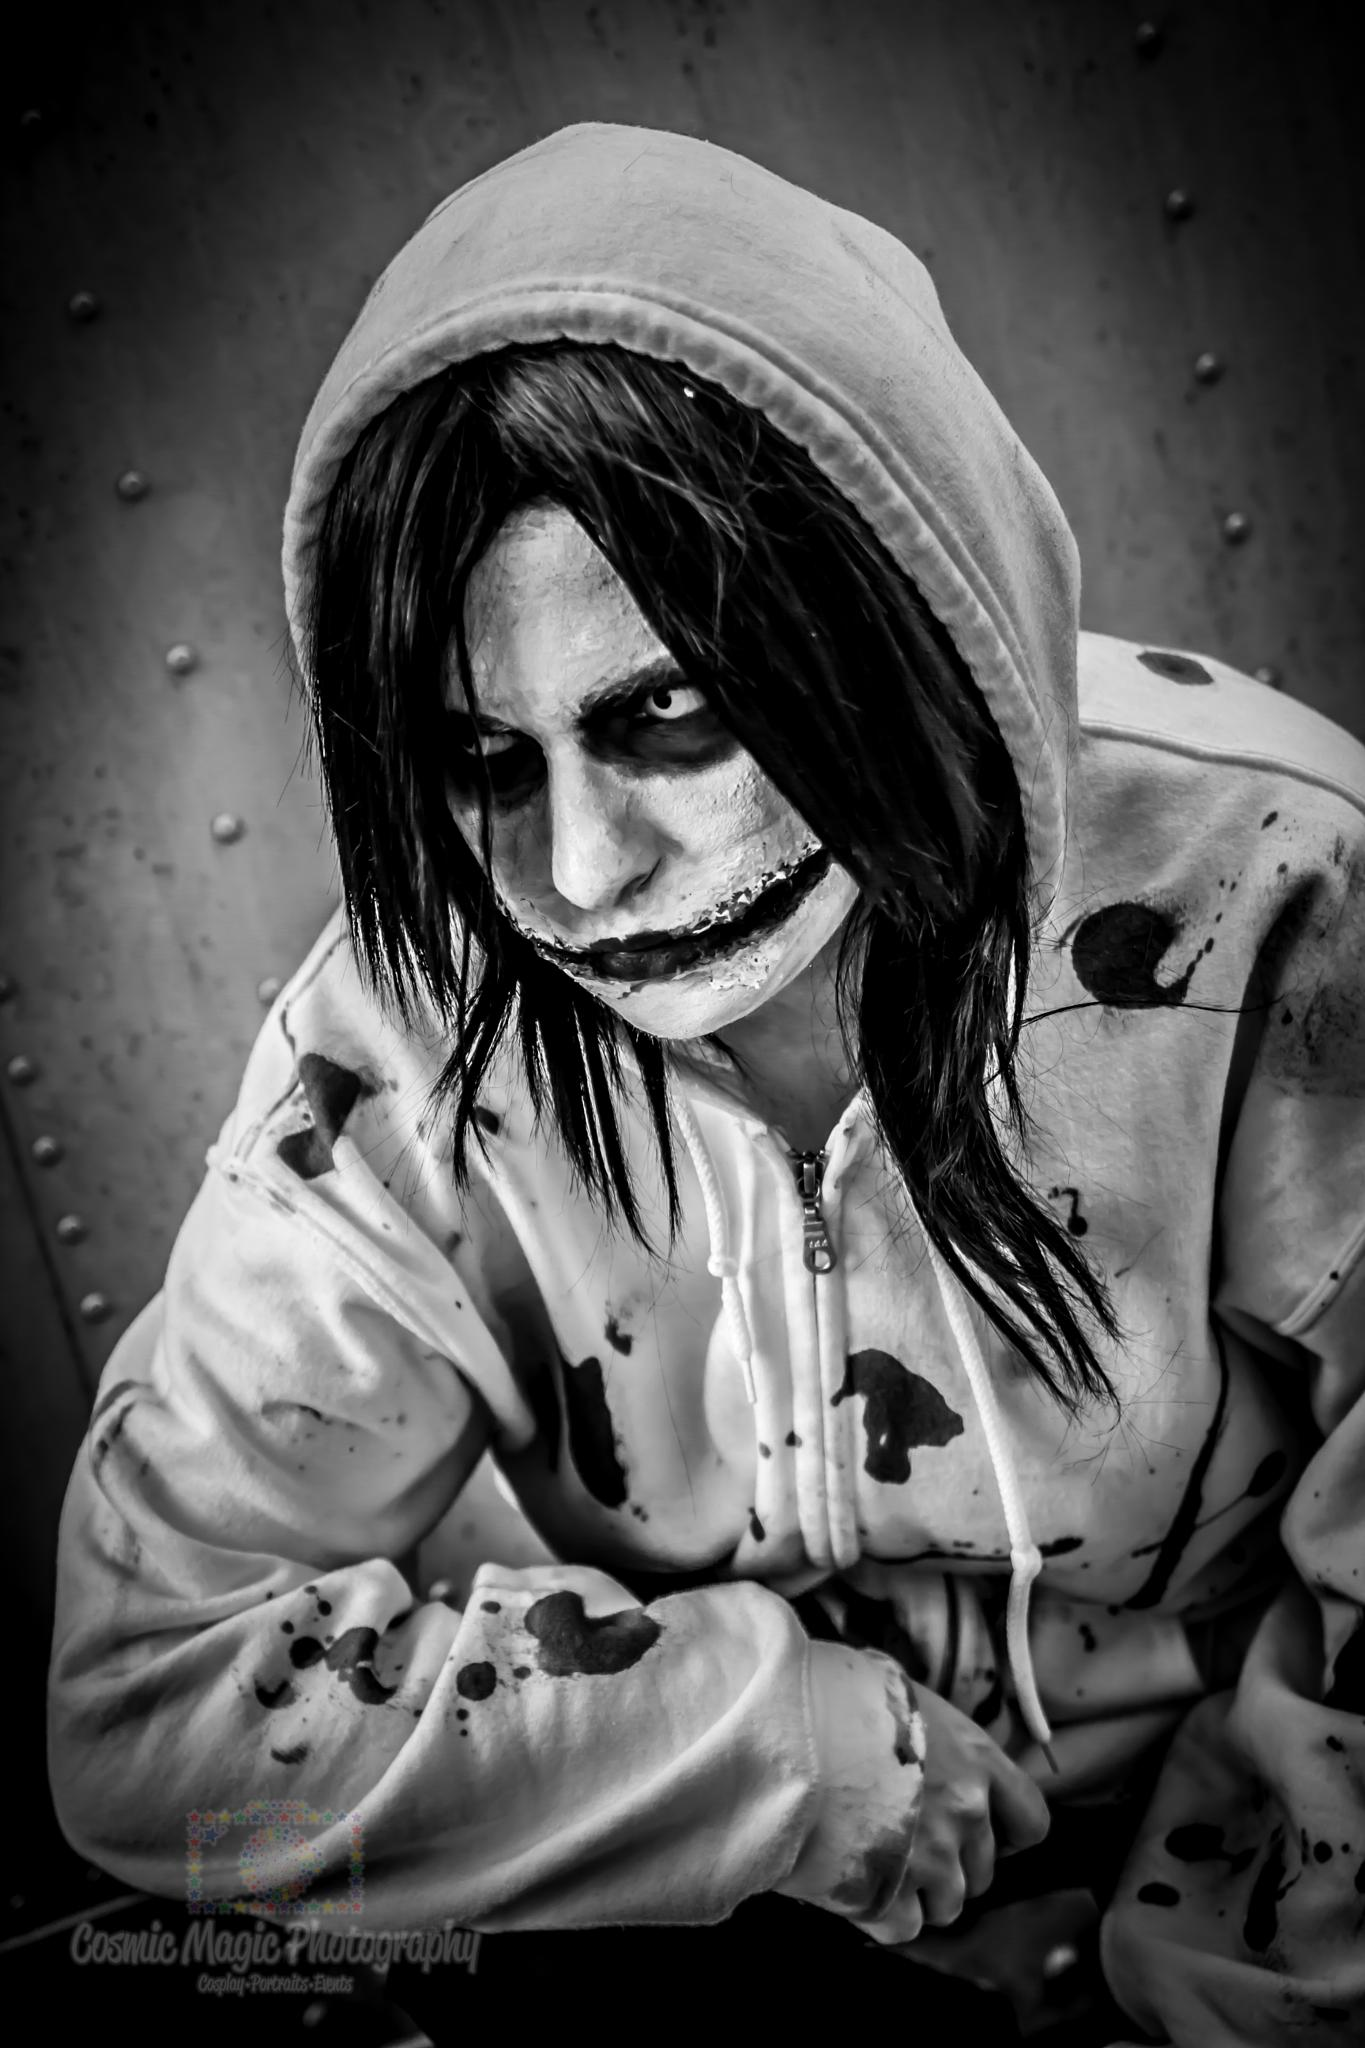 Creepypasta - Jeff The Killer @ Hoshicon 2015 by Gina Adkins